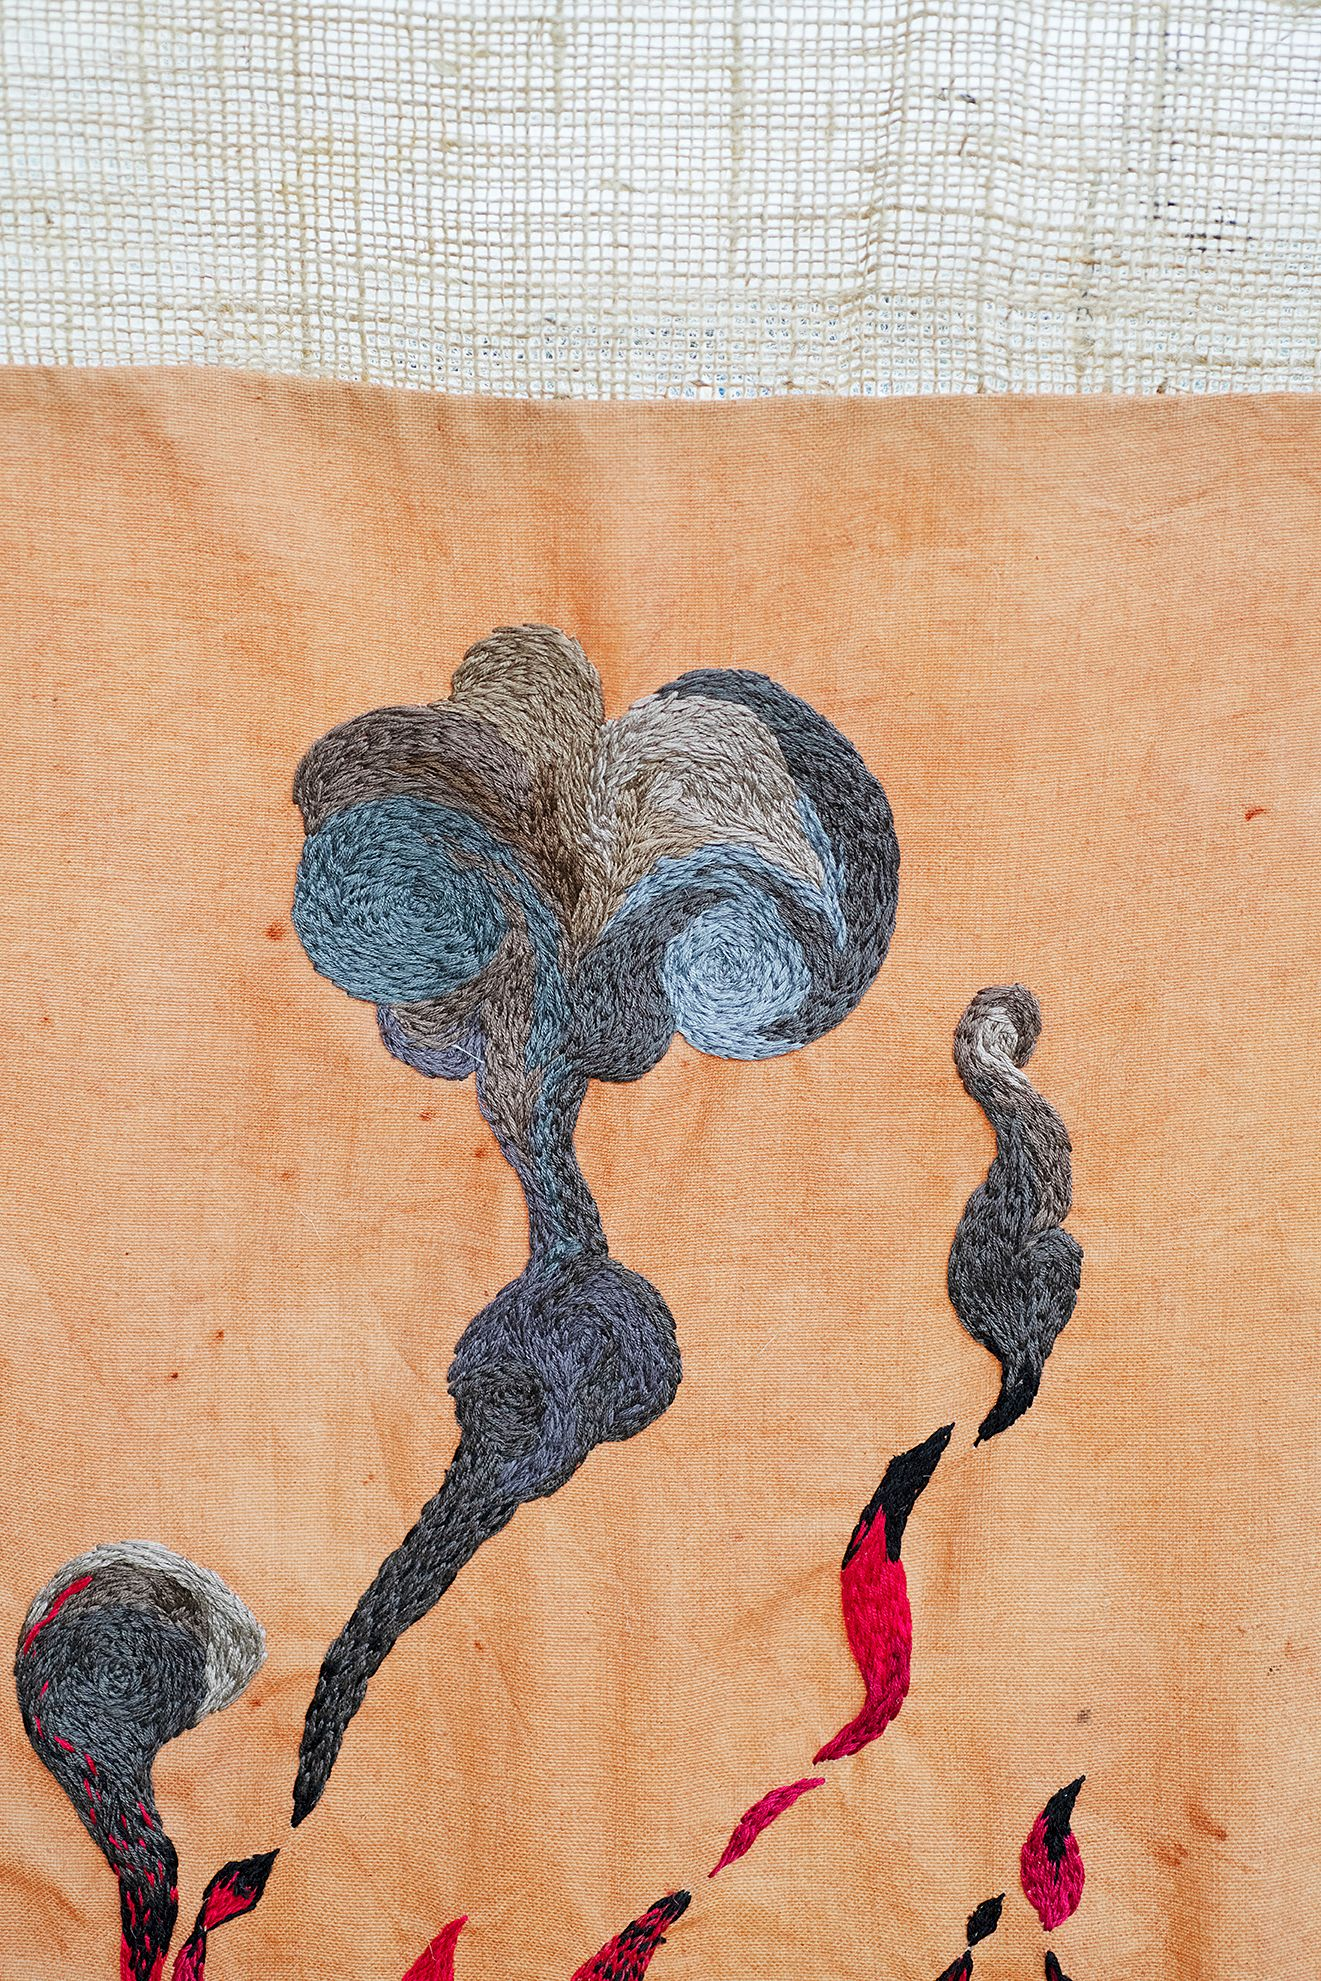 Quishile Charan, Burning Ganna Khet, 2021, cotton, embroidery thread, hessian sacks, natural dye: avocados, 153cm by 152cm. Close up of embroidery. Image taken by:Raymond Sagapolutele.